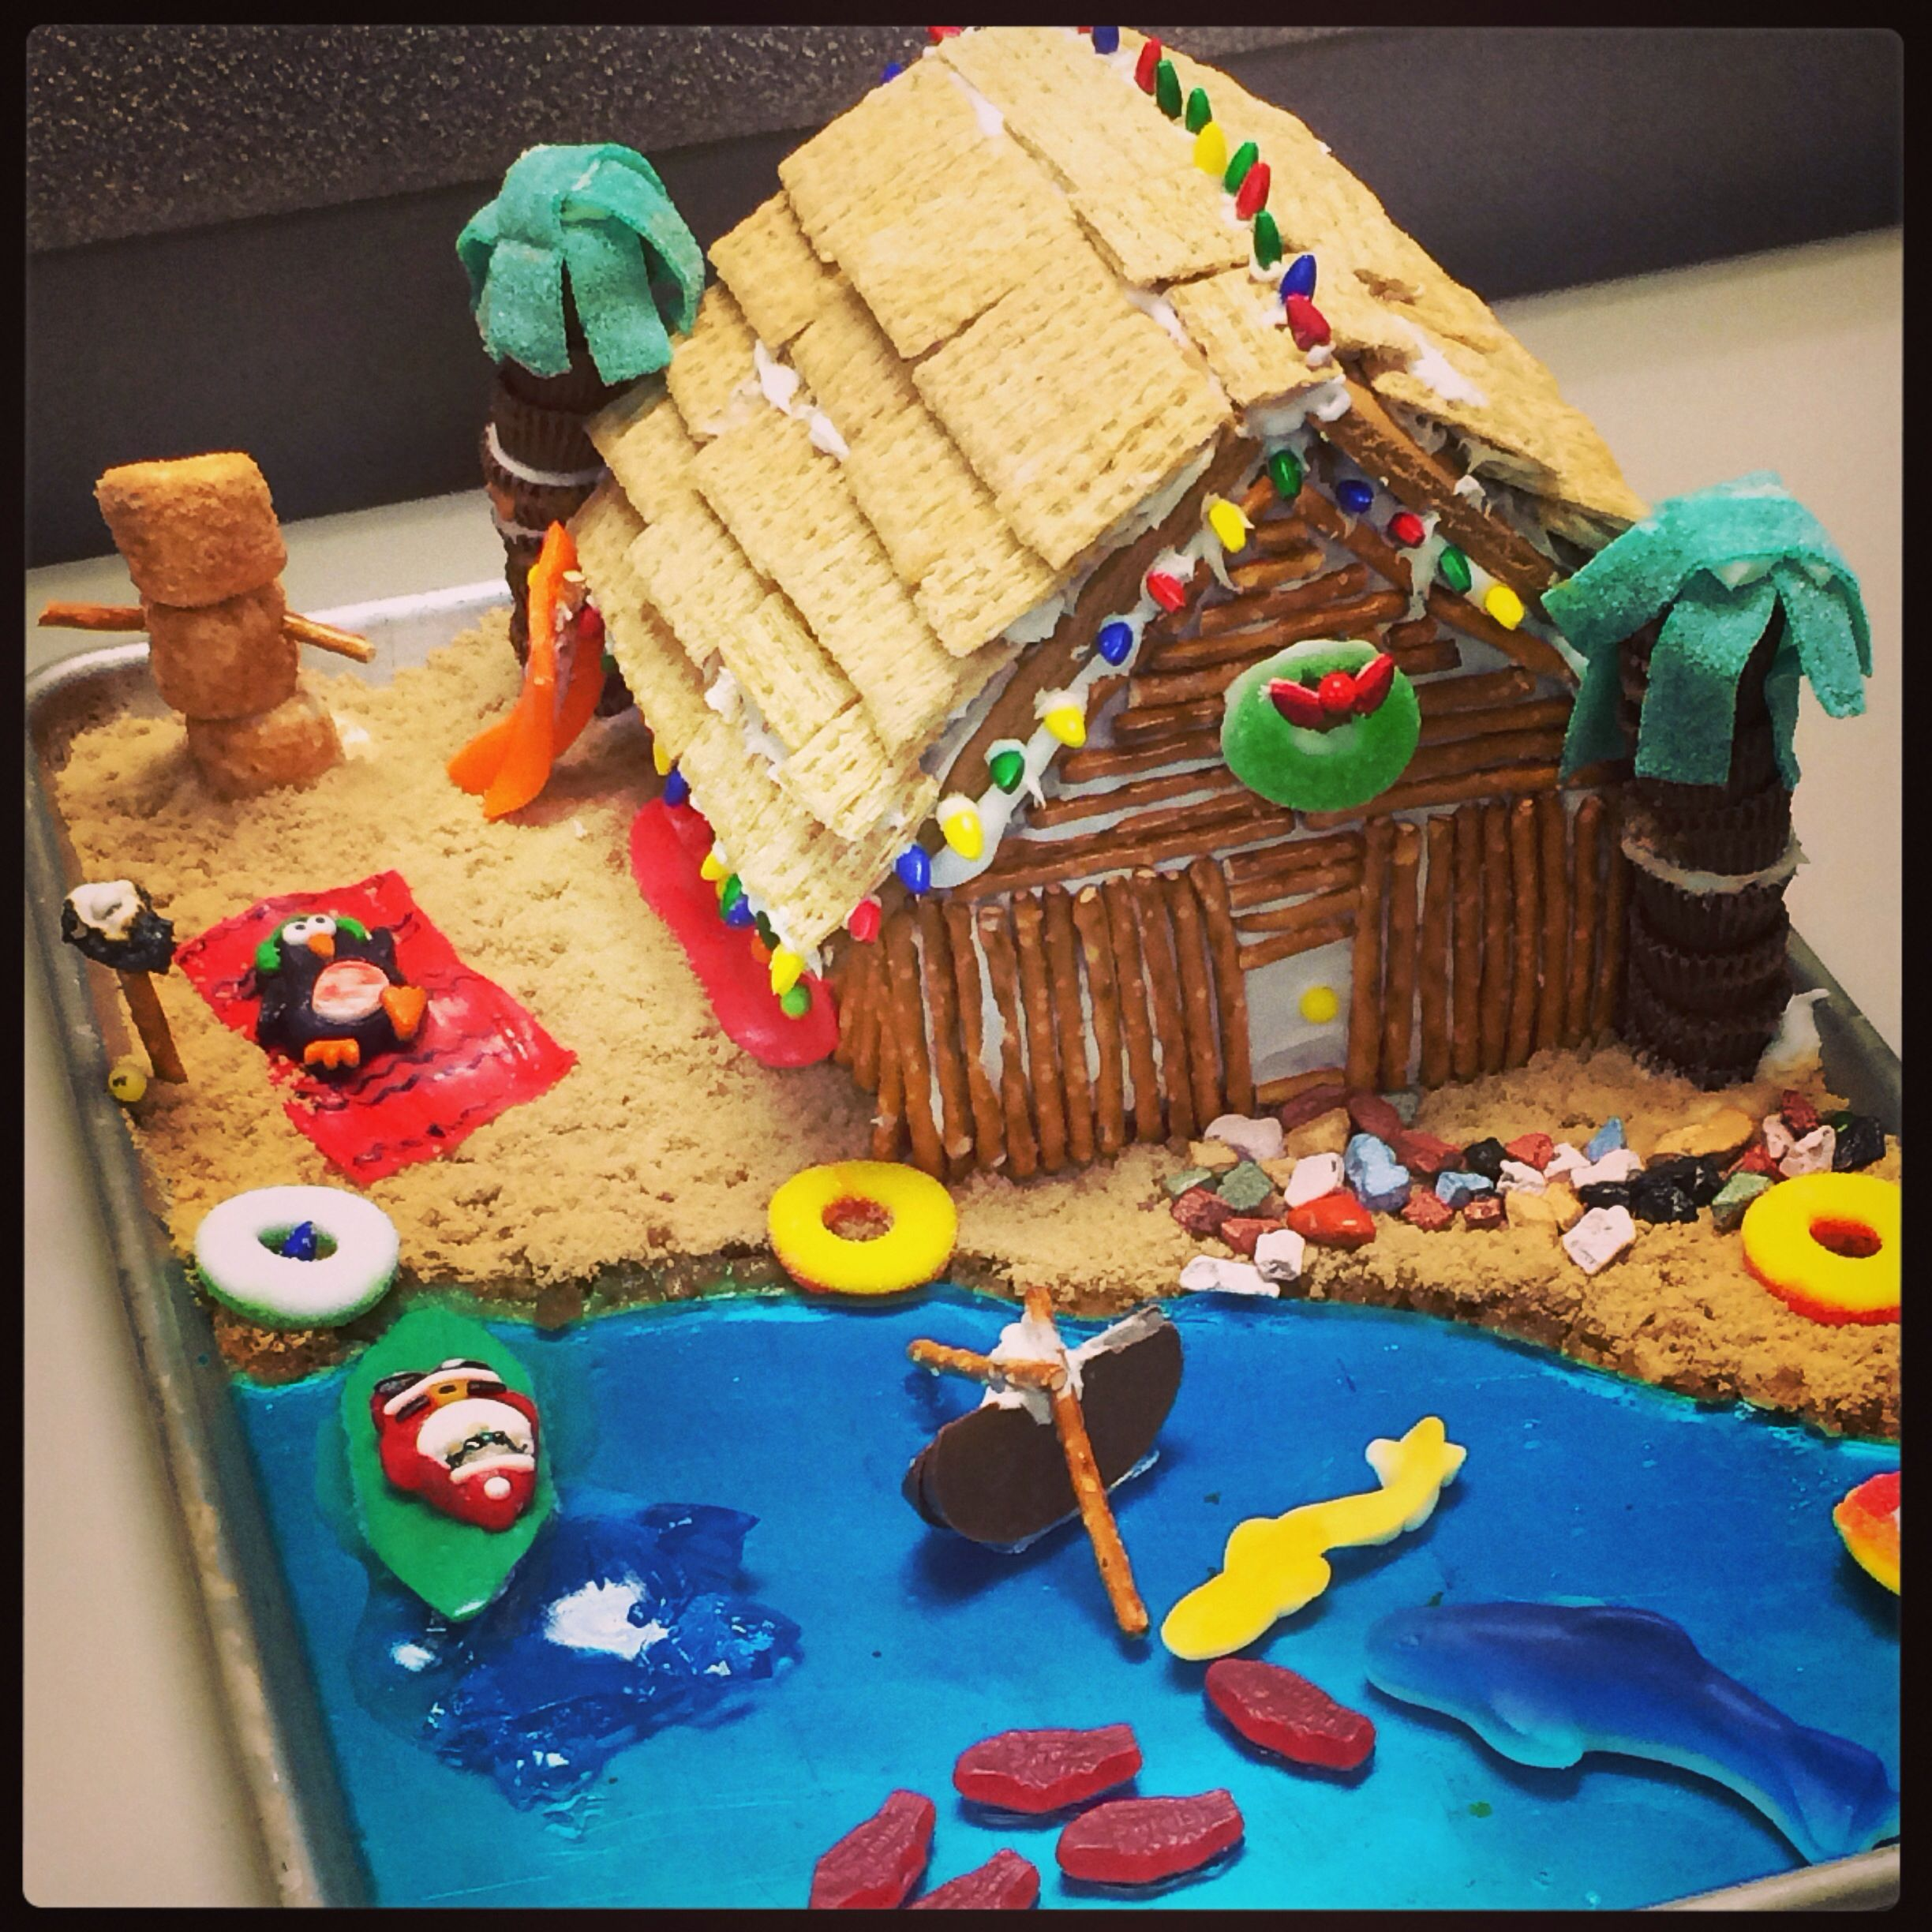 Beach Themed Gingerbread House: Tiki Gingerbread House:) We Lit A Marshmallow On Fire As A